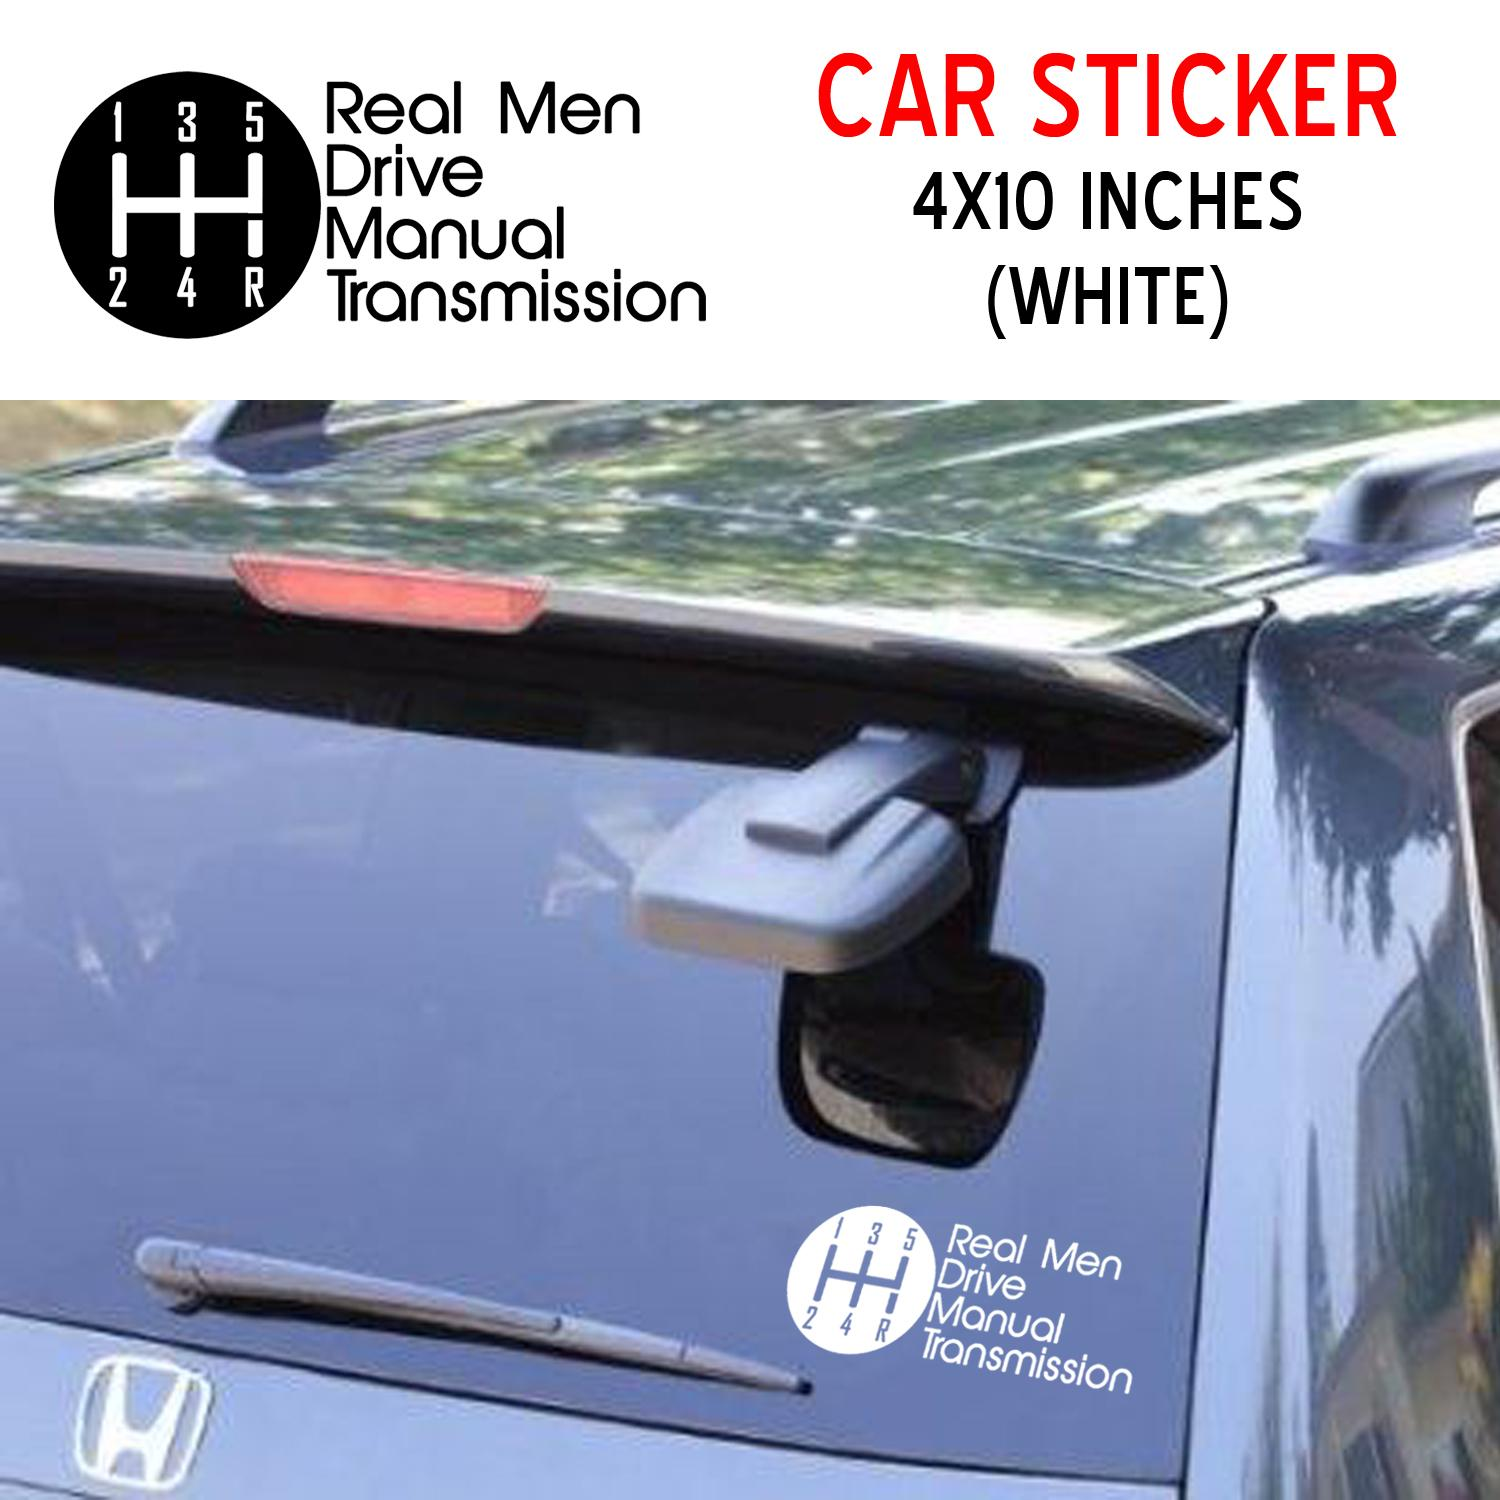 Real Men Drive Manual Transmission Car Sticker Decal White Waterproof Weatherproof Lazada Ph